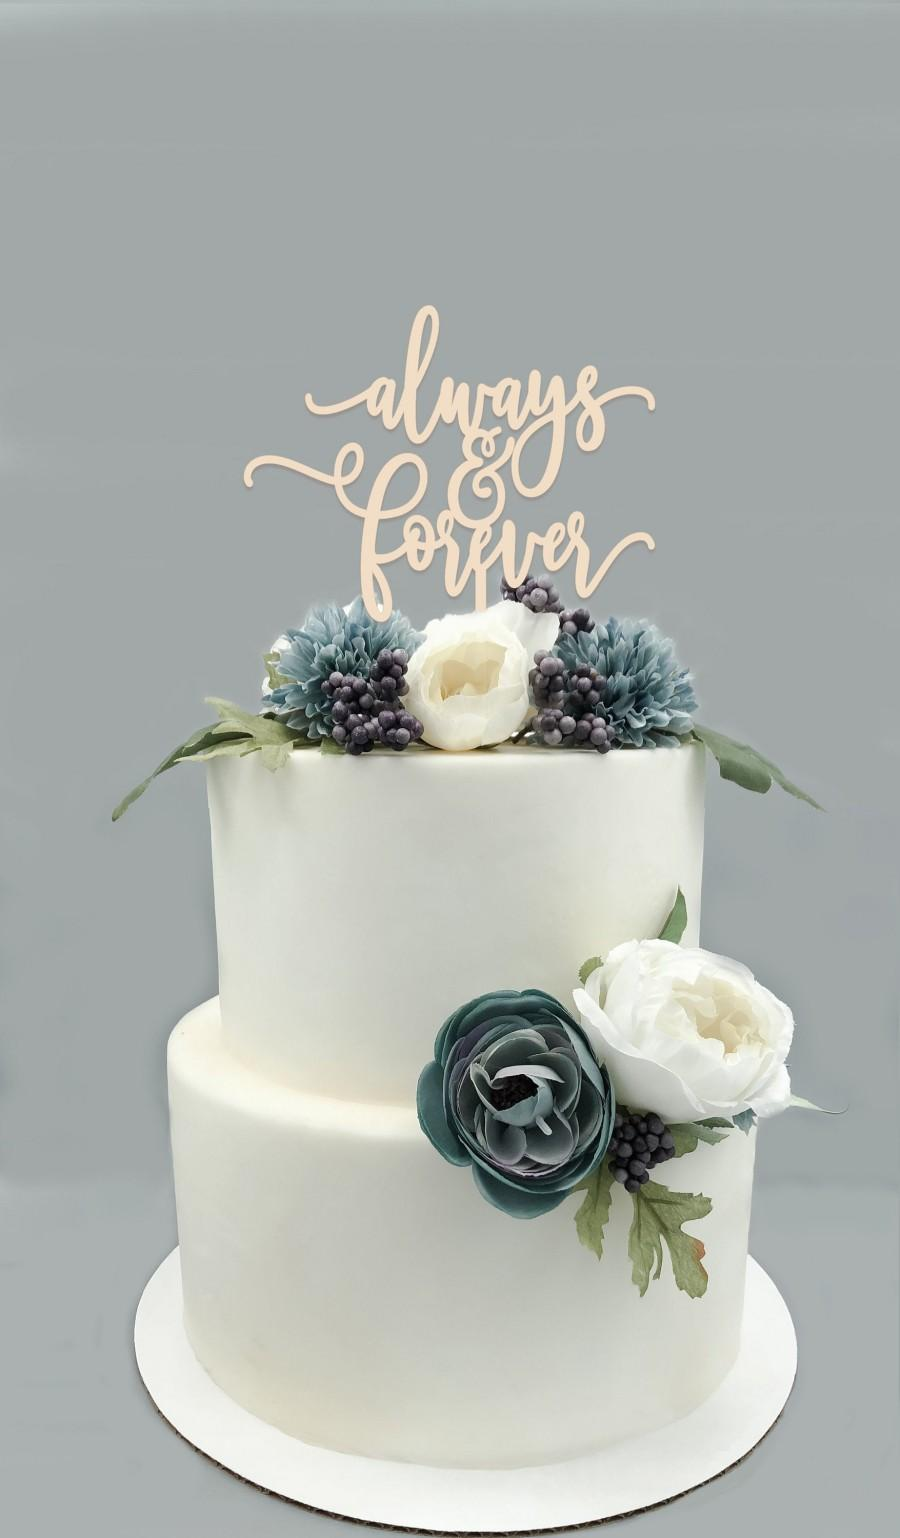 Wedding - Always and Forever Wood  Cake Topper- Wedding Cake Topper, Wedding Decor, Cake Decor, Engagement Cake Topper, Anniversary Cake Topper